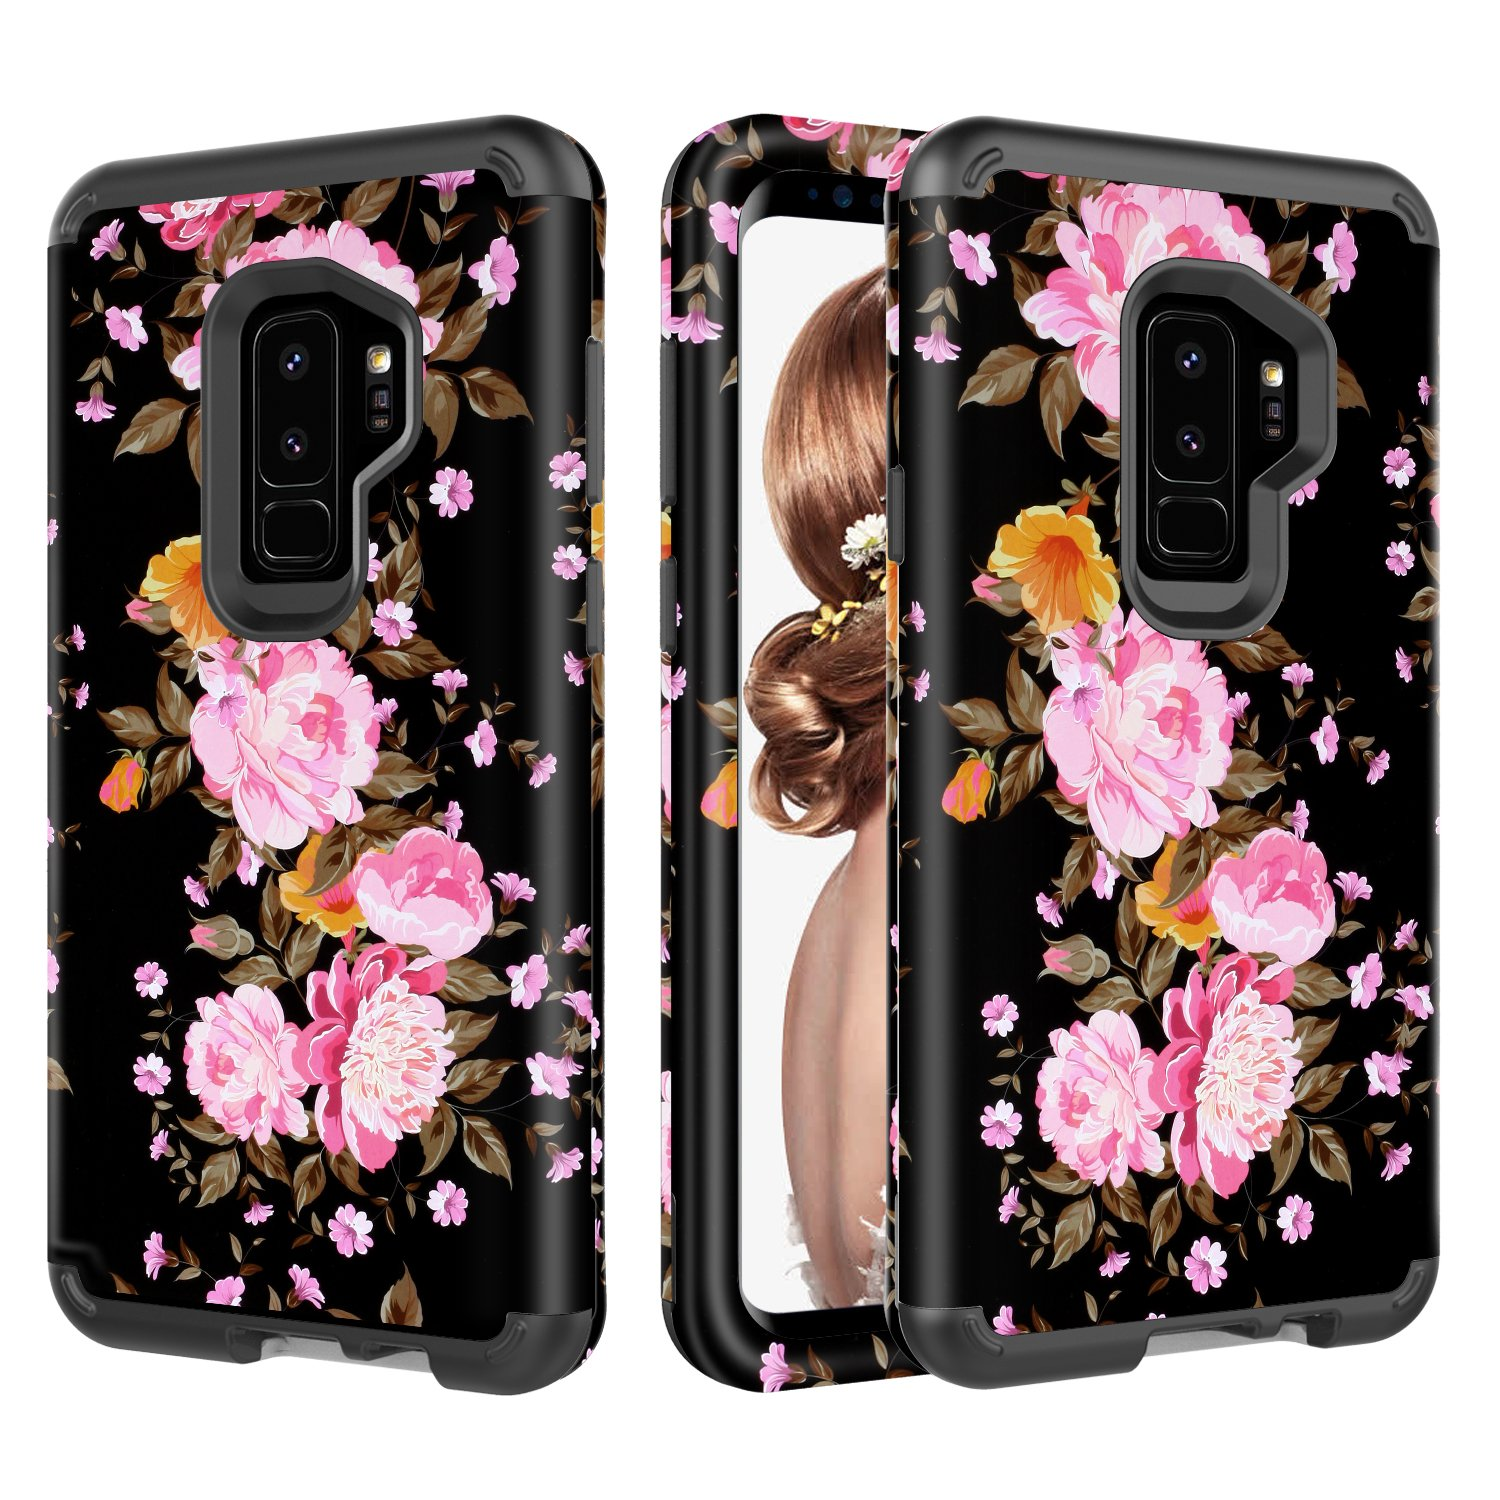 Amazon com: Galaxy S9 Plus Case, UZER Flower Series Shockproof 3 in